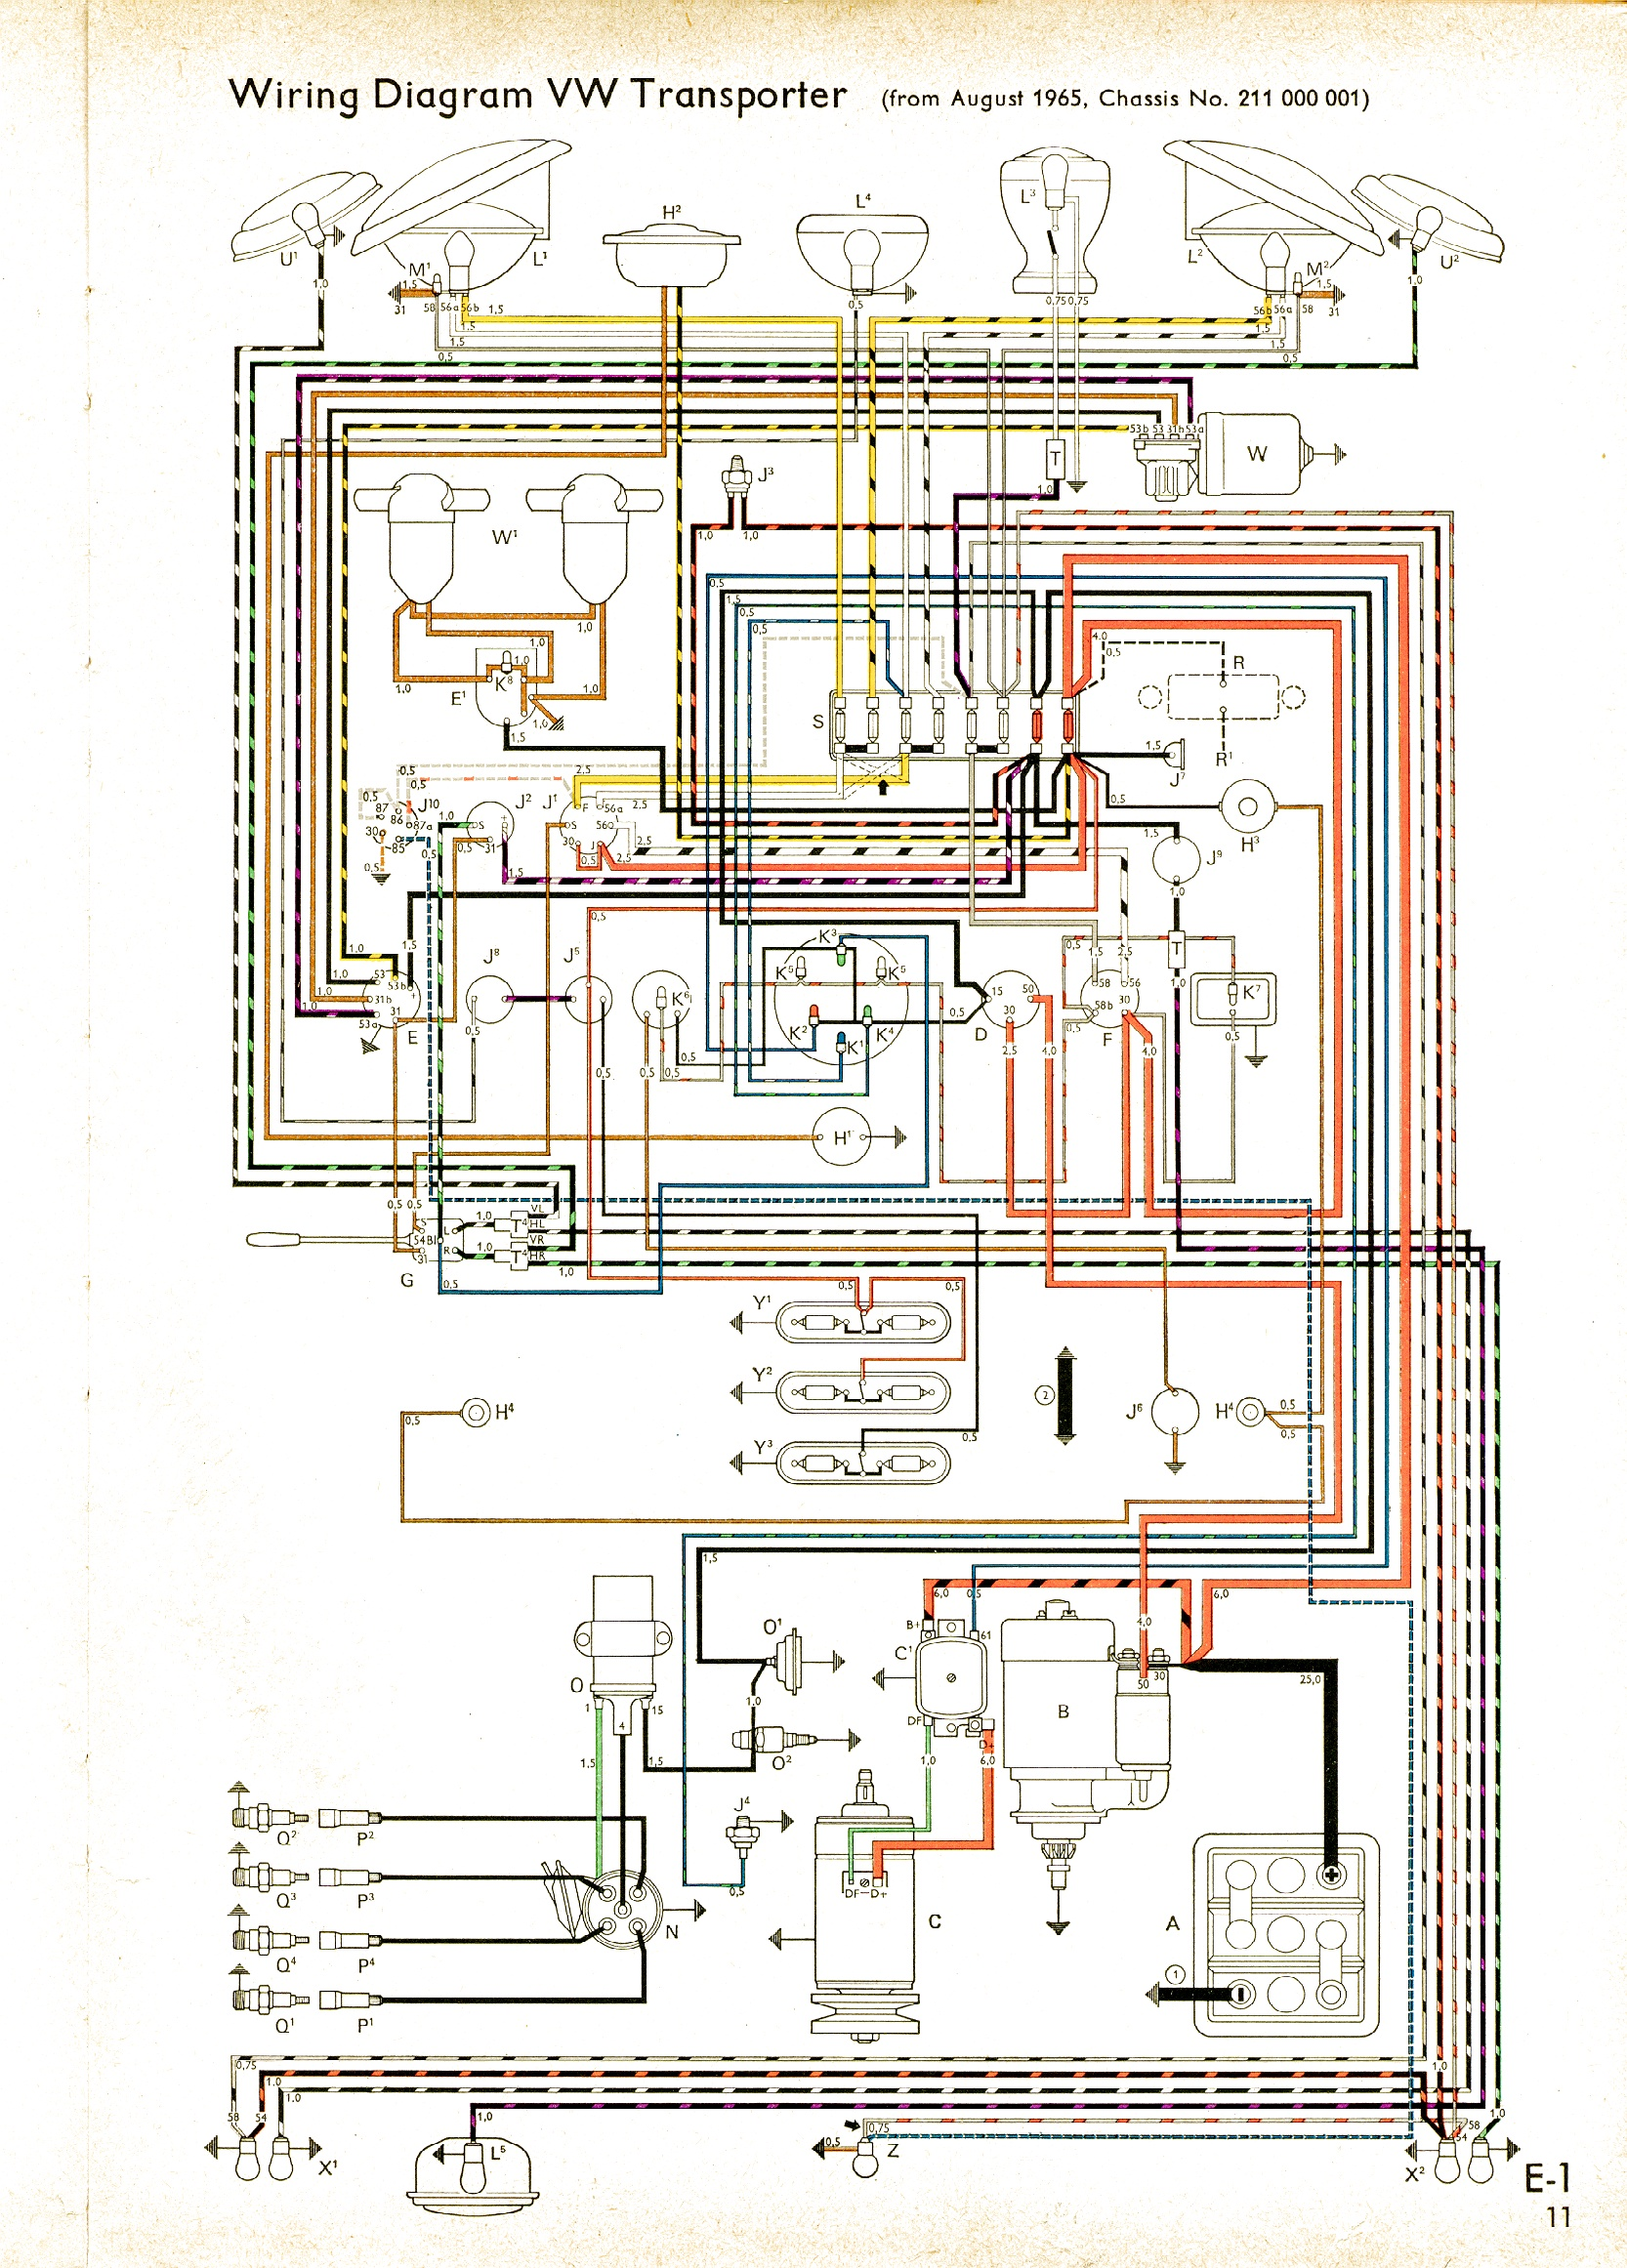 1967 vw beetle wiring diagram RIDAwNe 1967 vw bug wiring diagram on 1967 download wirning diagrams 1970 vw beetle wiring schematic at n-0.co